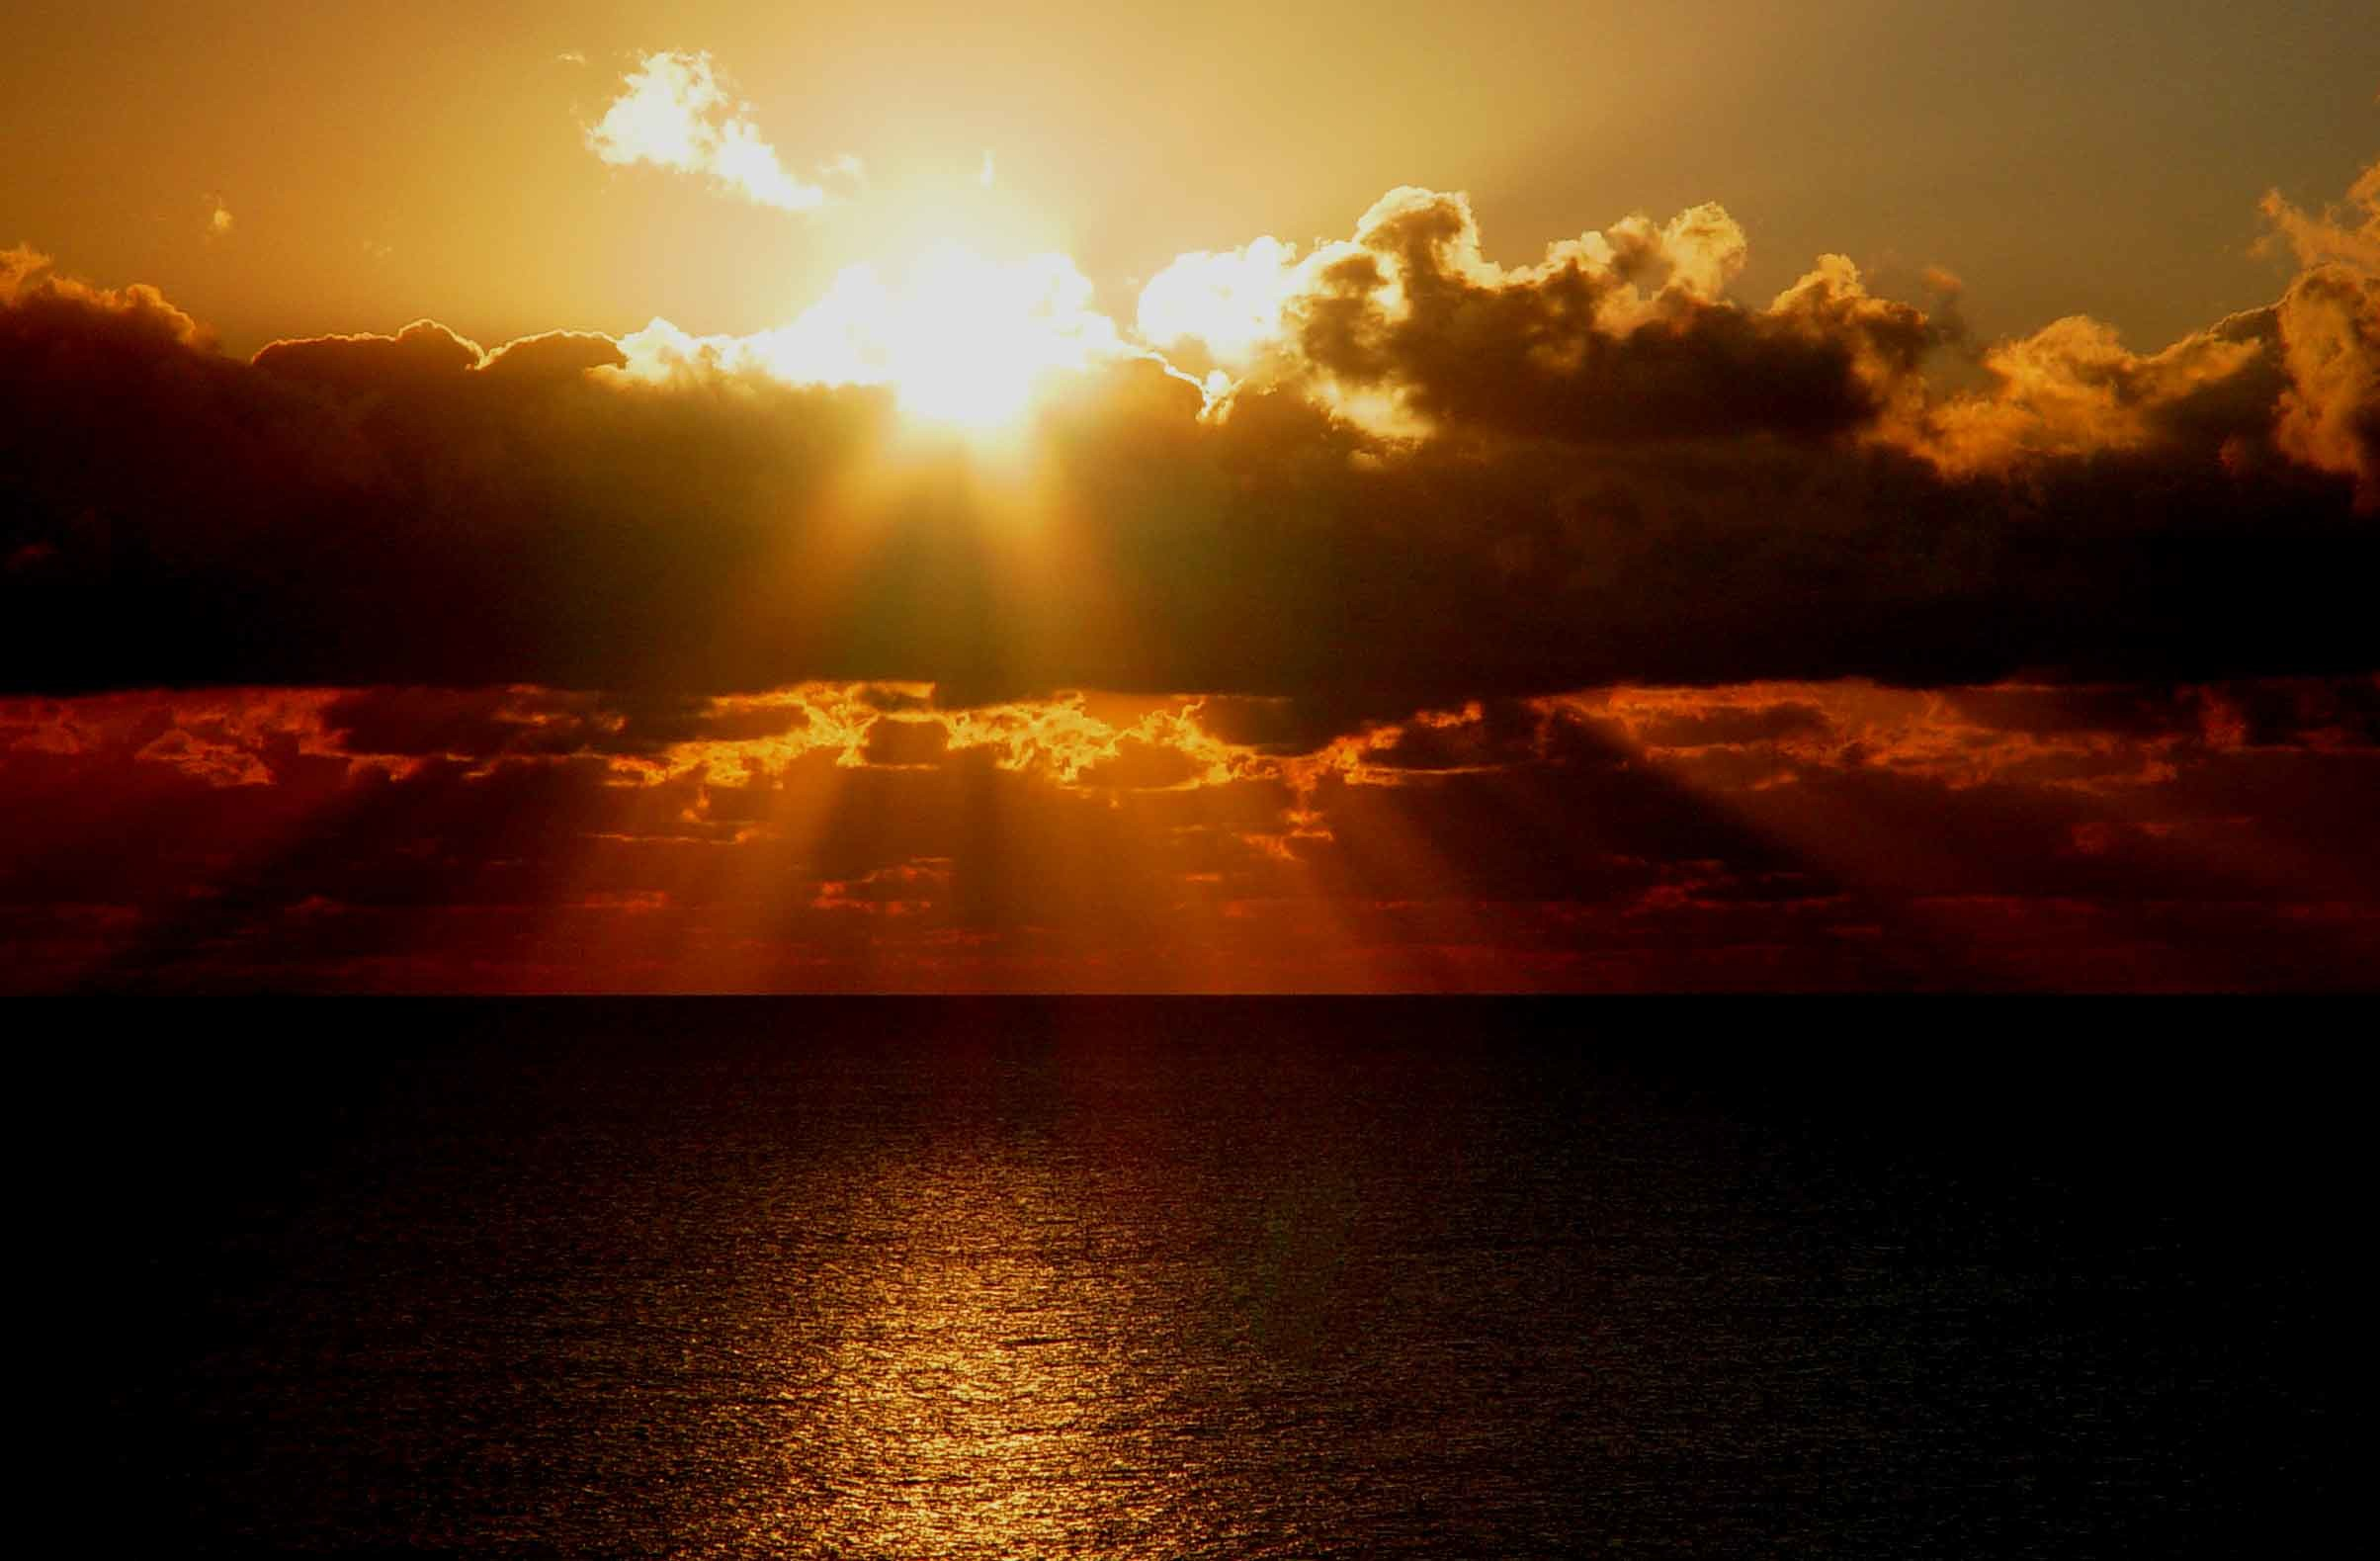 30 BEAUTIFUL SUNRISE -SUNSET WALLPAPERS FREE TO DOWNLOAD